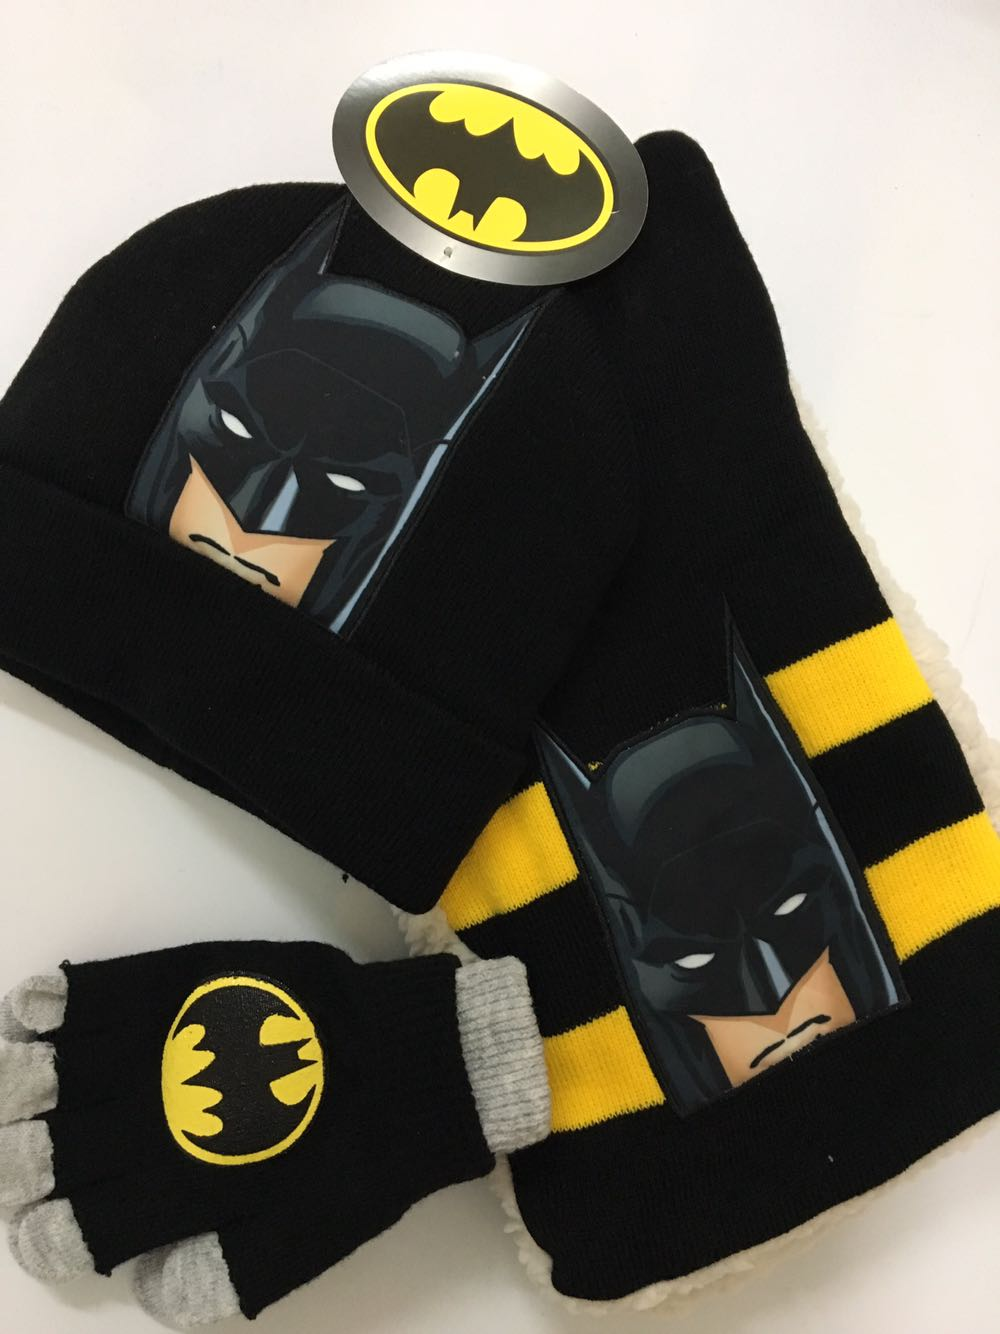 1set Cartoon Cute Avengers Batman Knit Beanie Hat Children Christmas Winter Knitted Scarf Gloves Hat Set Party Kids Gifts 2-8Y